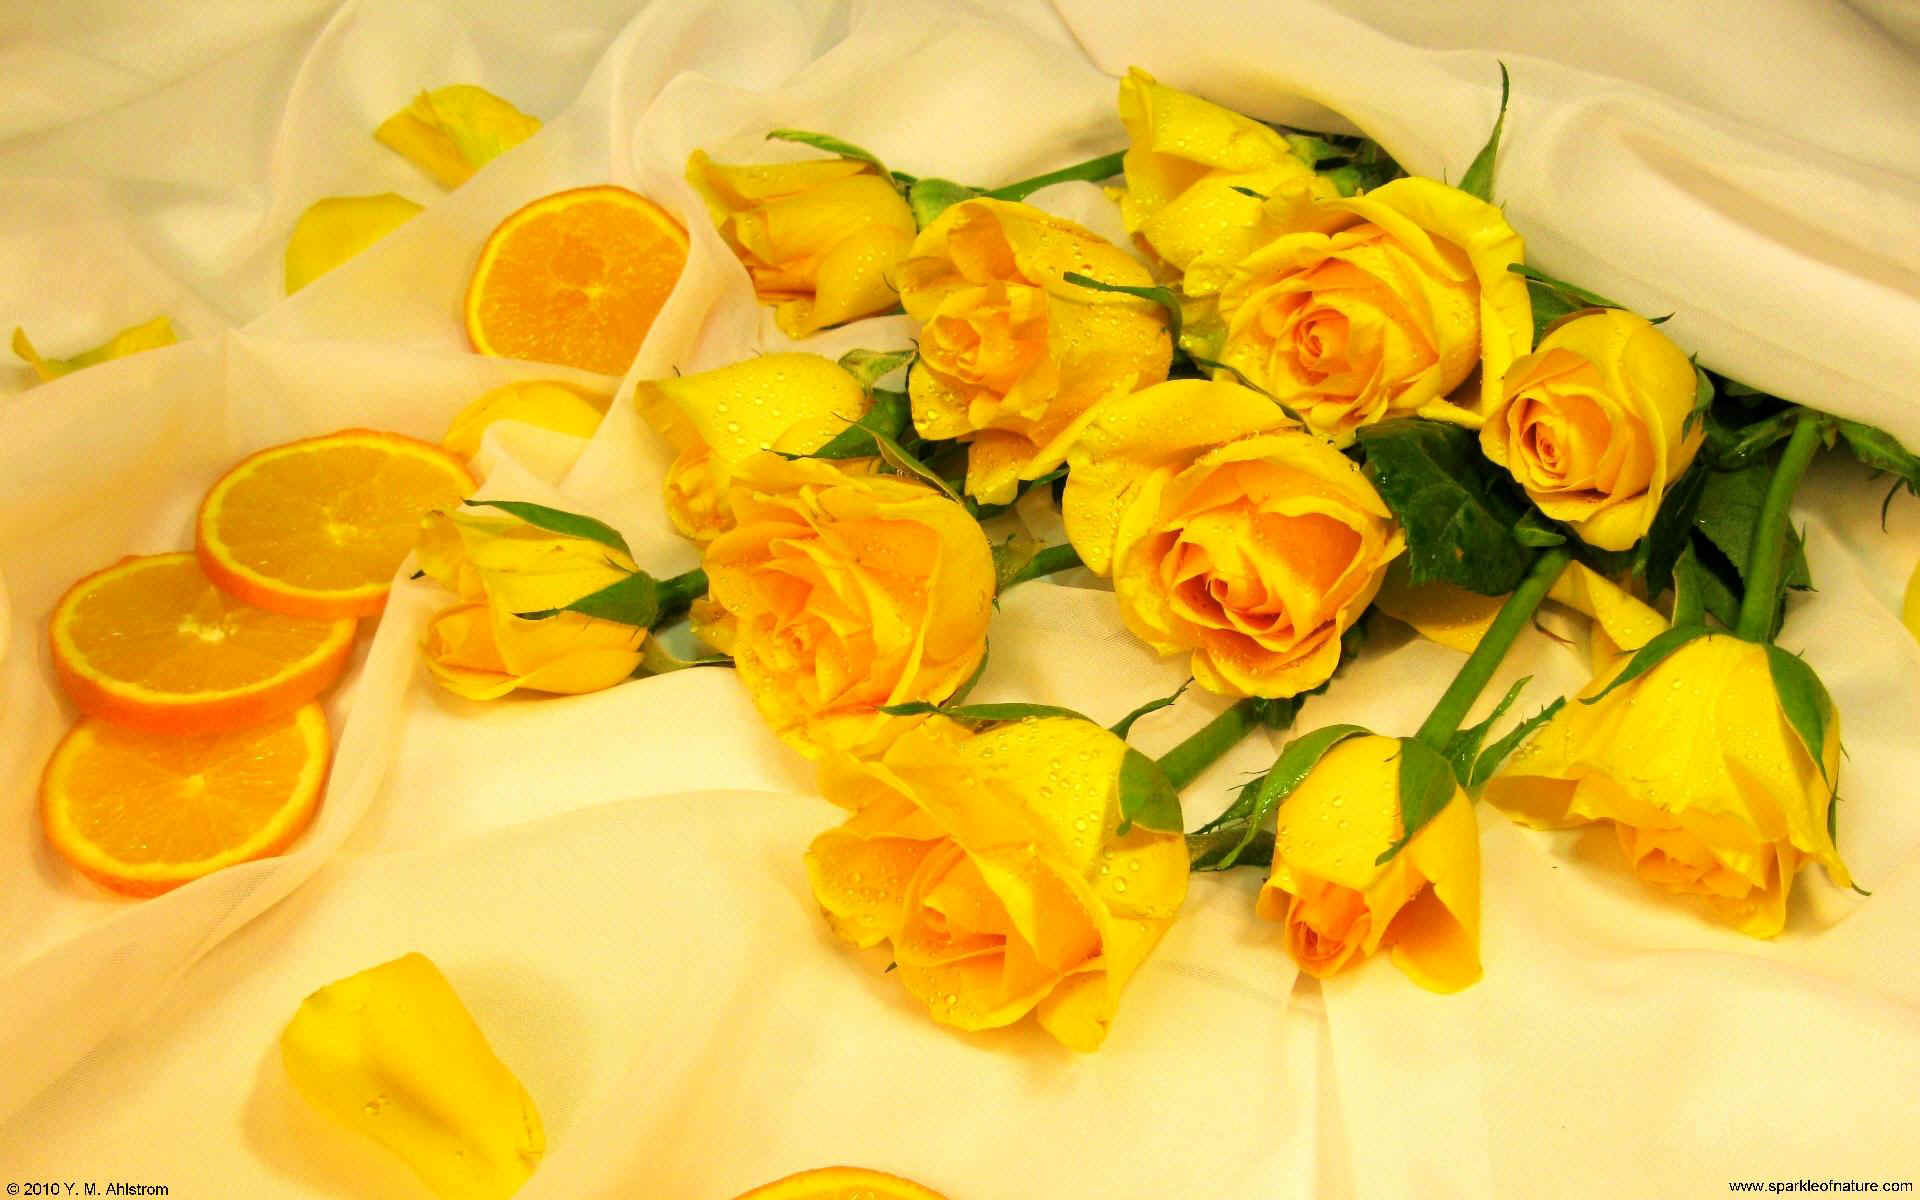 Hd wallpaper yellow flowers - 20091 Oranges And Yellow Roses W 1920x1200 Jpg 245547 Bytes